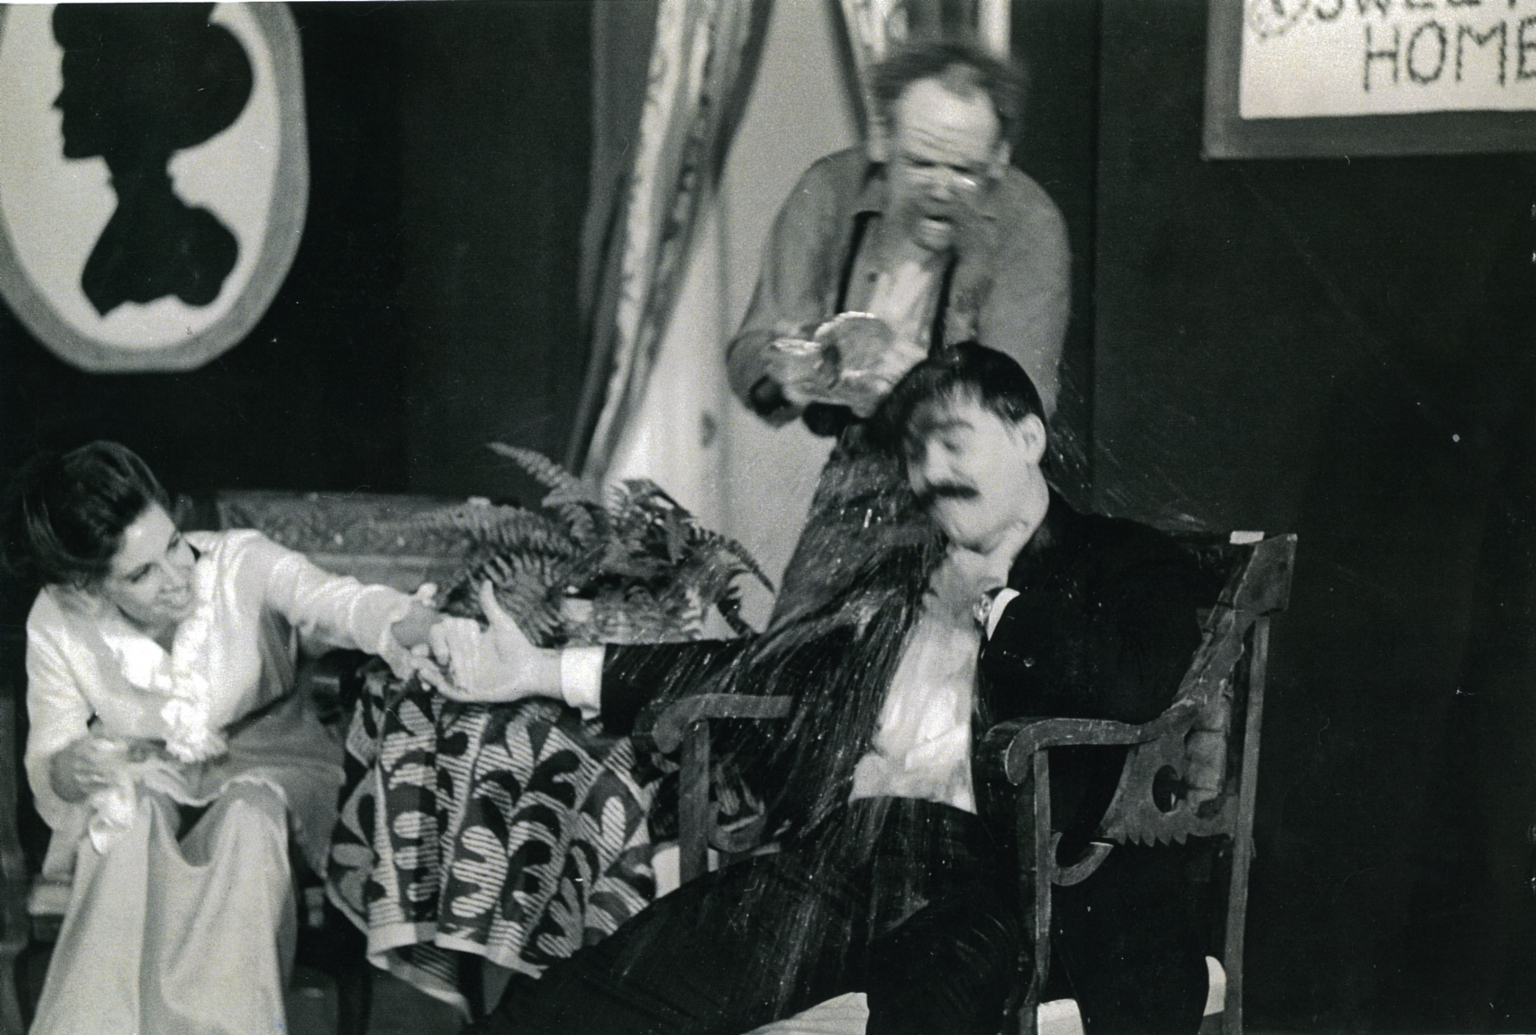 Nolan onstage in The Marriage Proposal 01